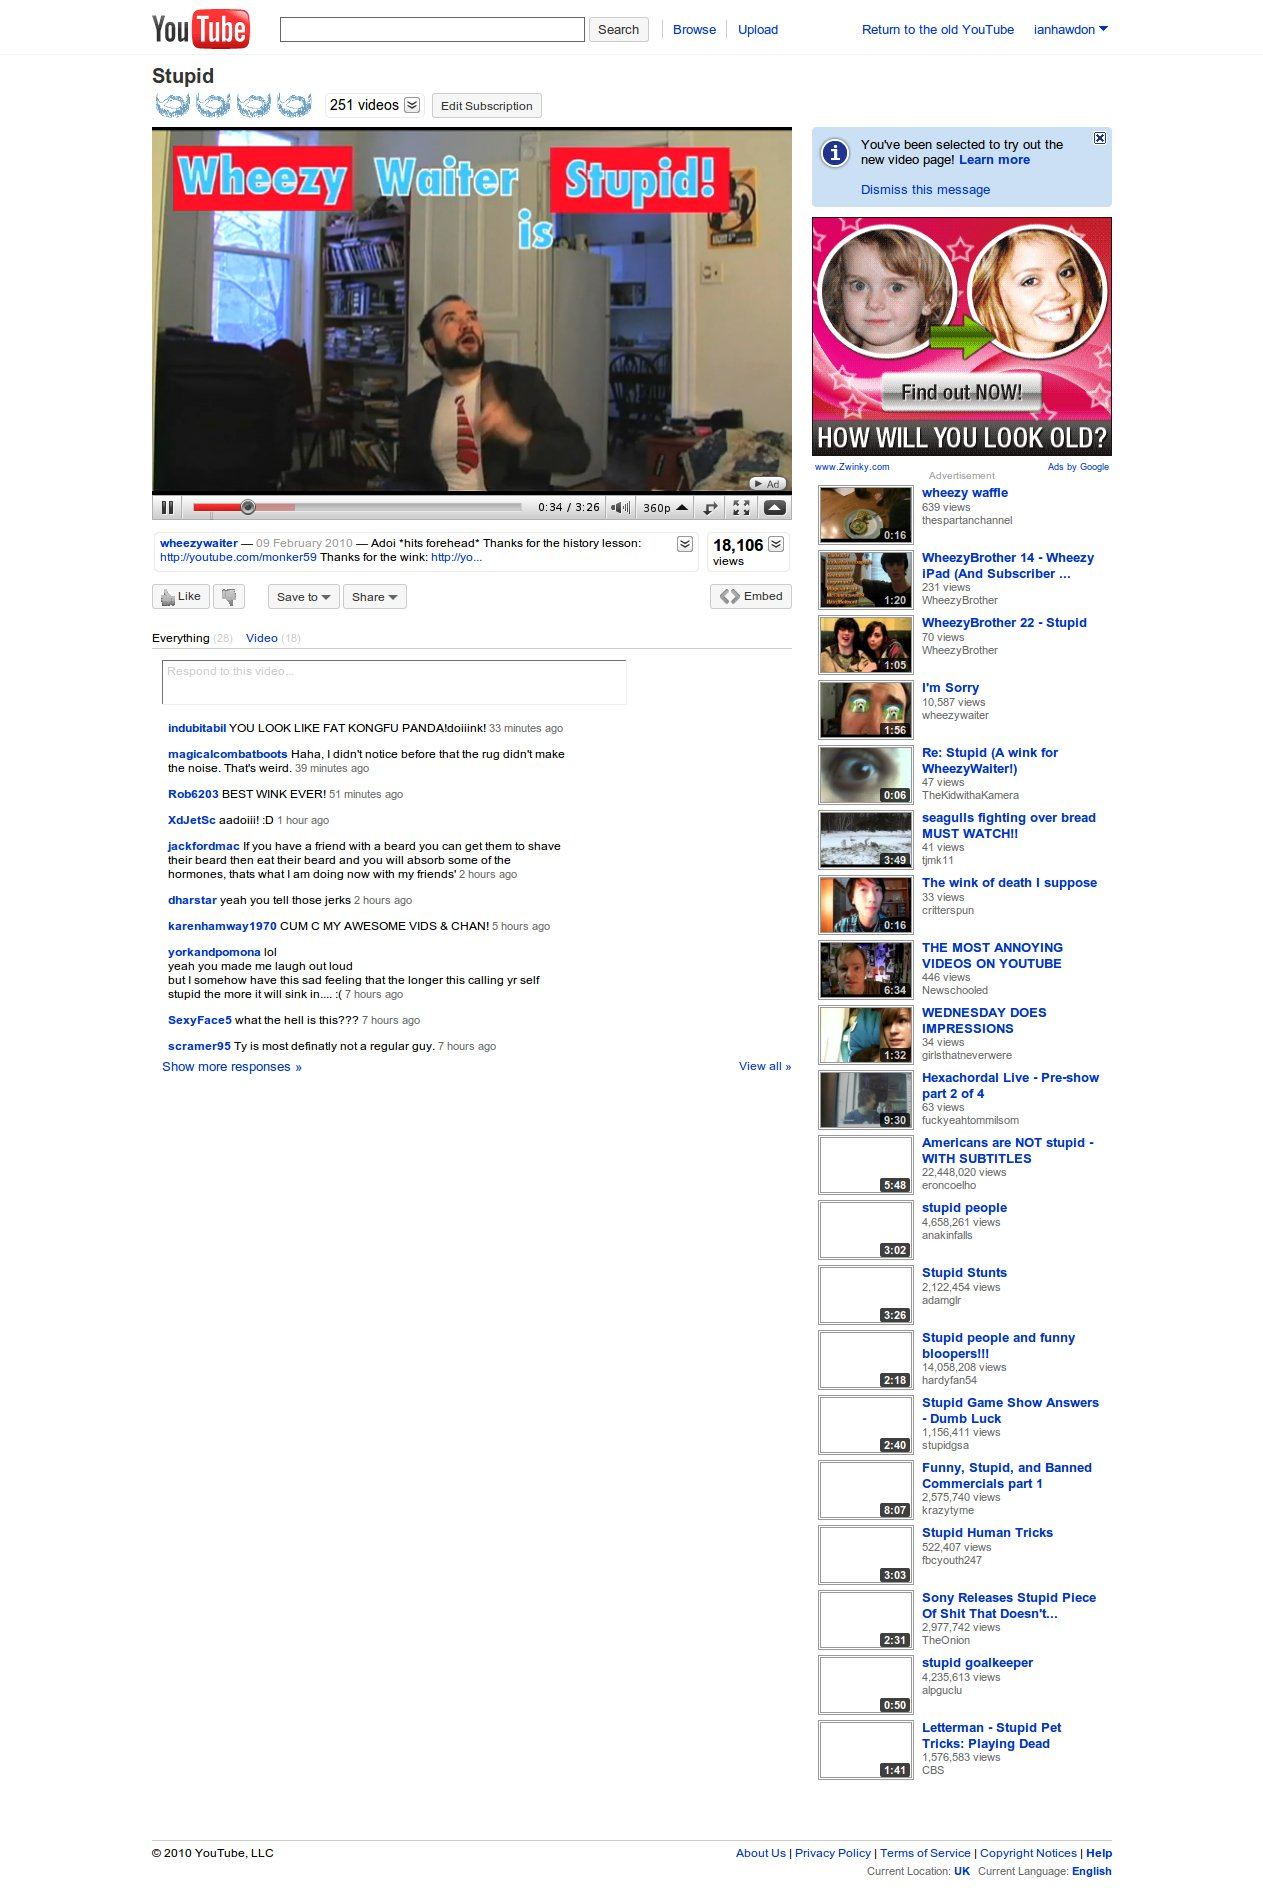 A look at the new youtube video page